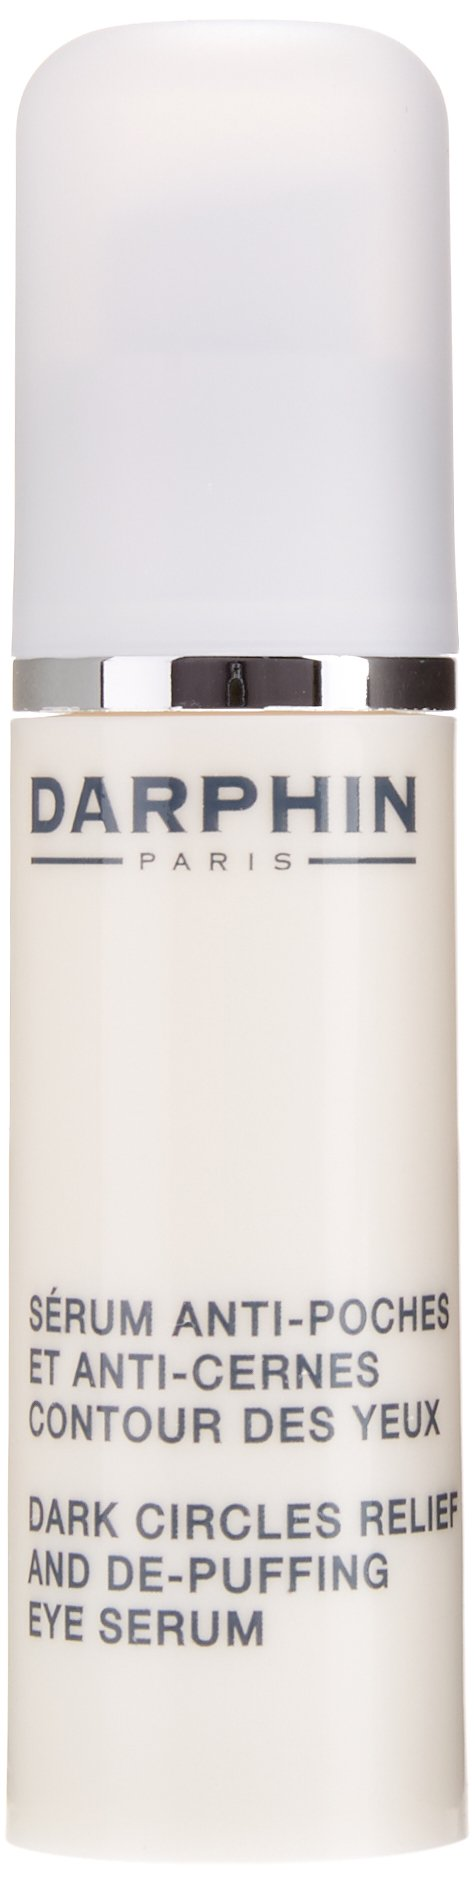 Darphin Dark Circles Relief and De-Puffing Eye Serum, 0.5 Ounce by Darphin (Image #5)